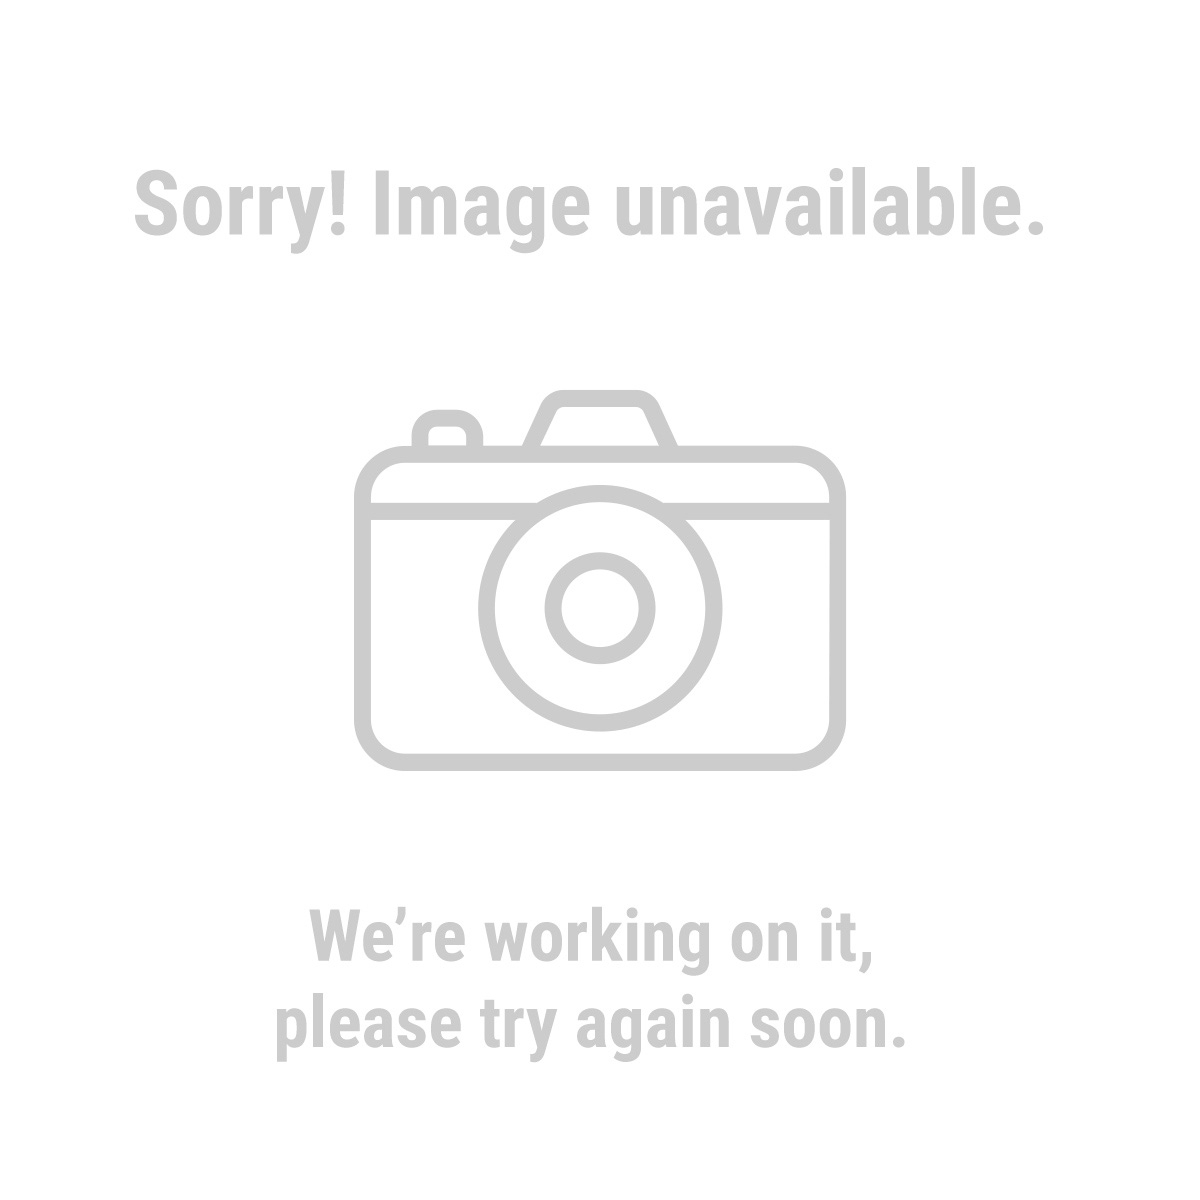 Road Shock 98393 Red Rectangular Stick-On Reflectors, 2 Pack